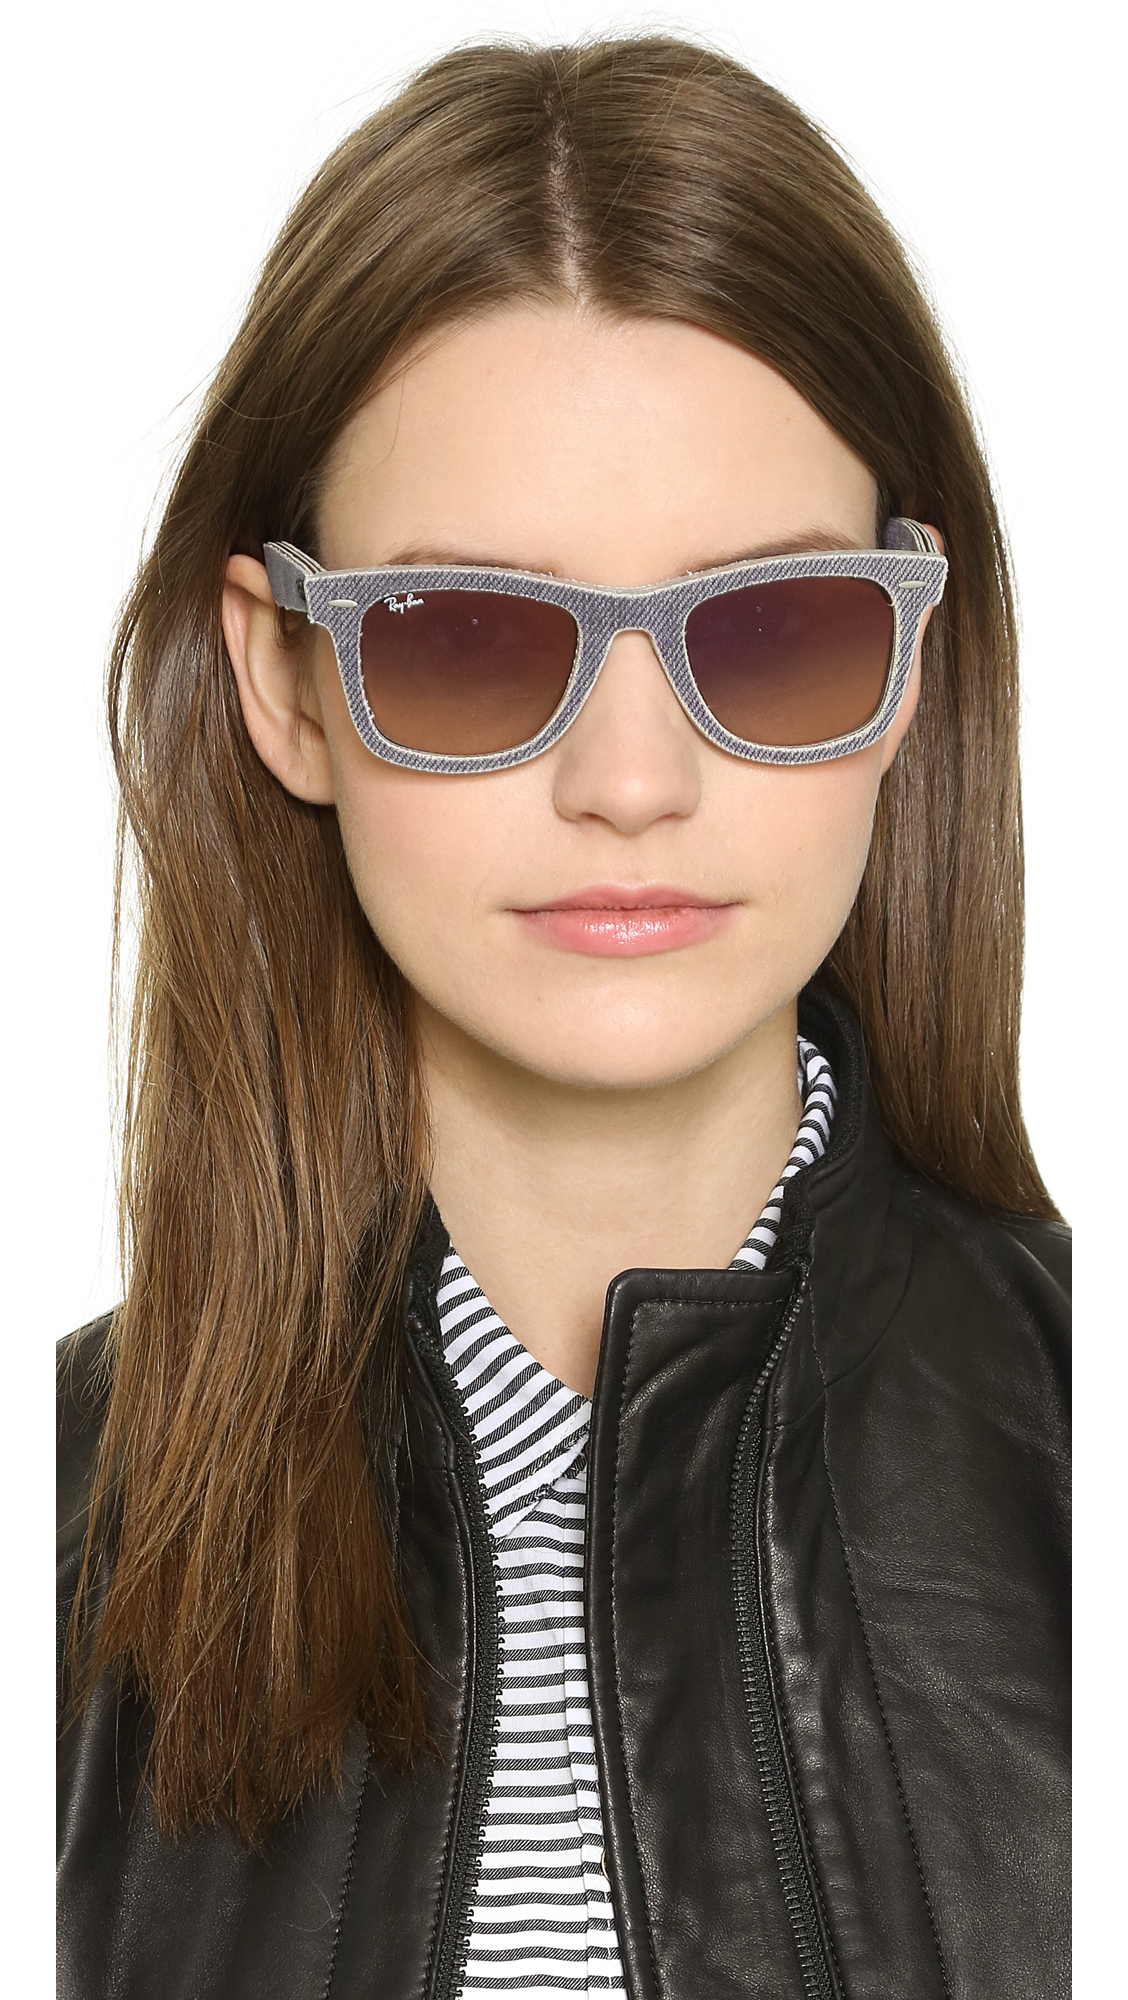 ray ban keyhole wayfarer sunglasses  gallery. previously sold at: shopbop · women's wayfarer sunglasses